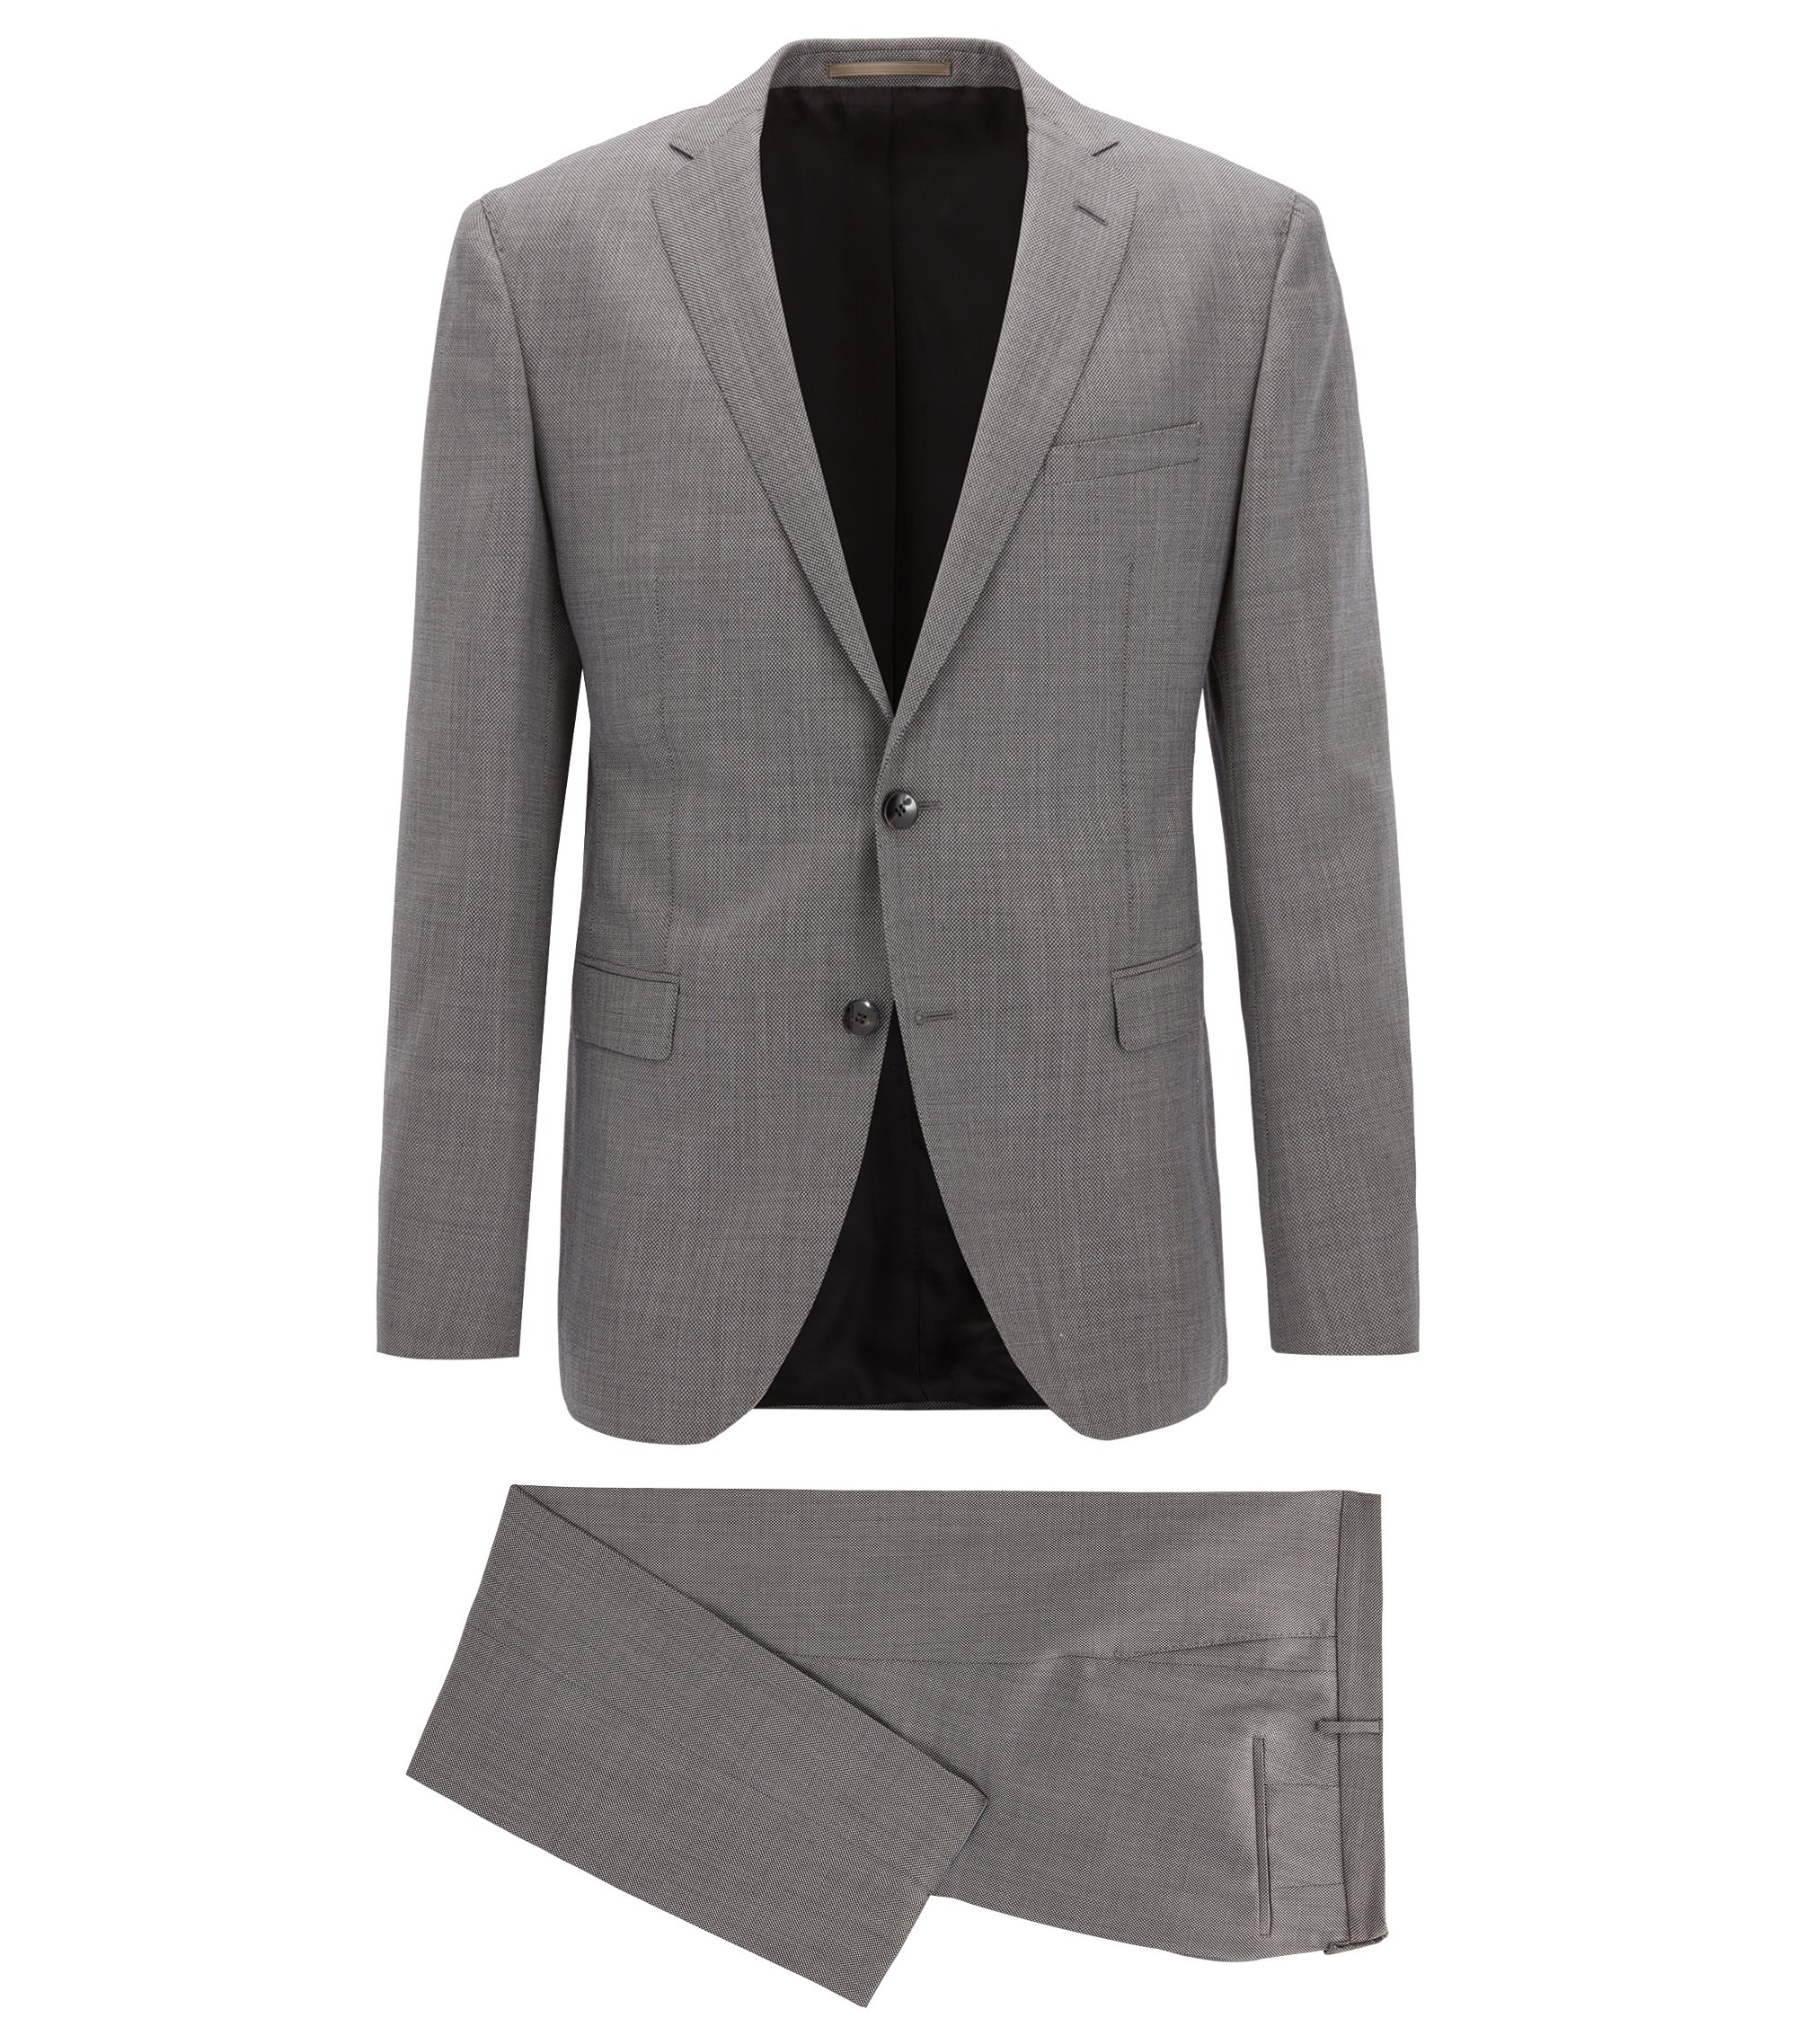 Sharkskin Virgin Wool Suit, Extra Slim Fit | Reyno/Wave, Open Grey